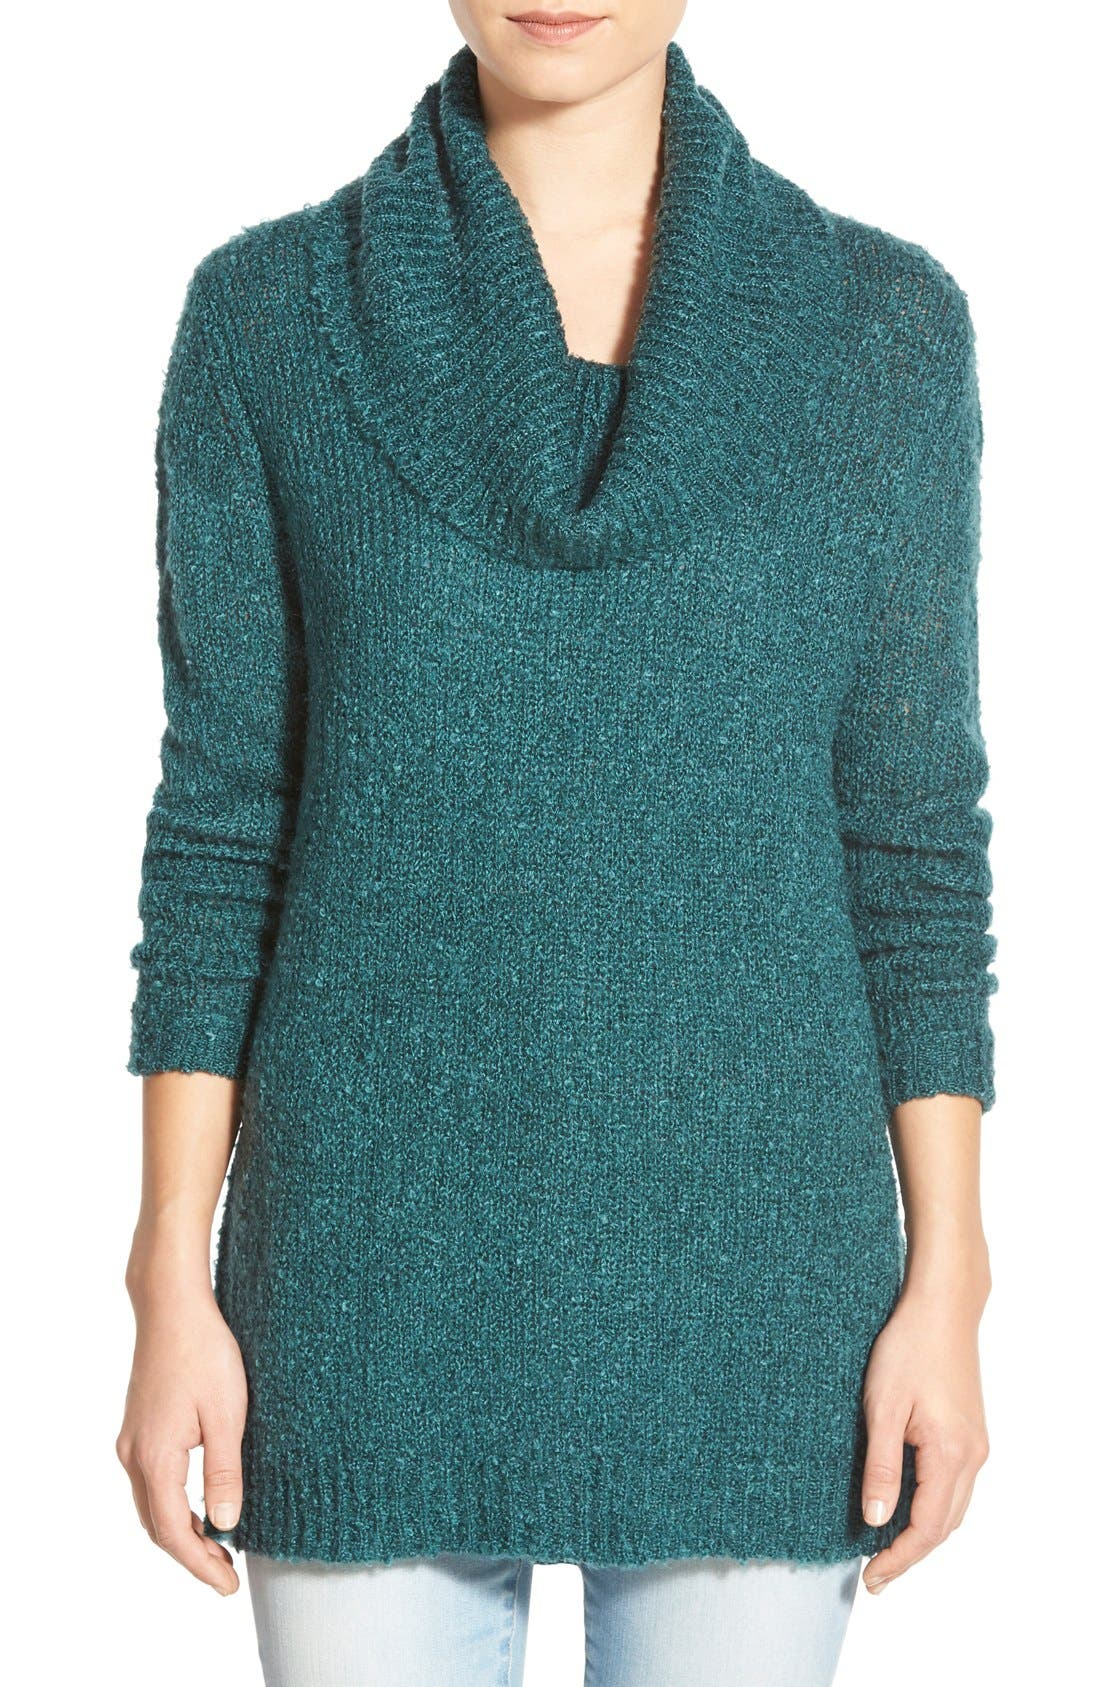 Alternate Image 1 Selected - BP. Cowl Neck Tunic Sweater